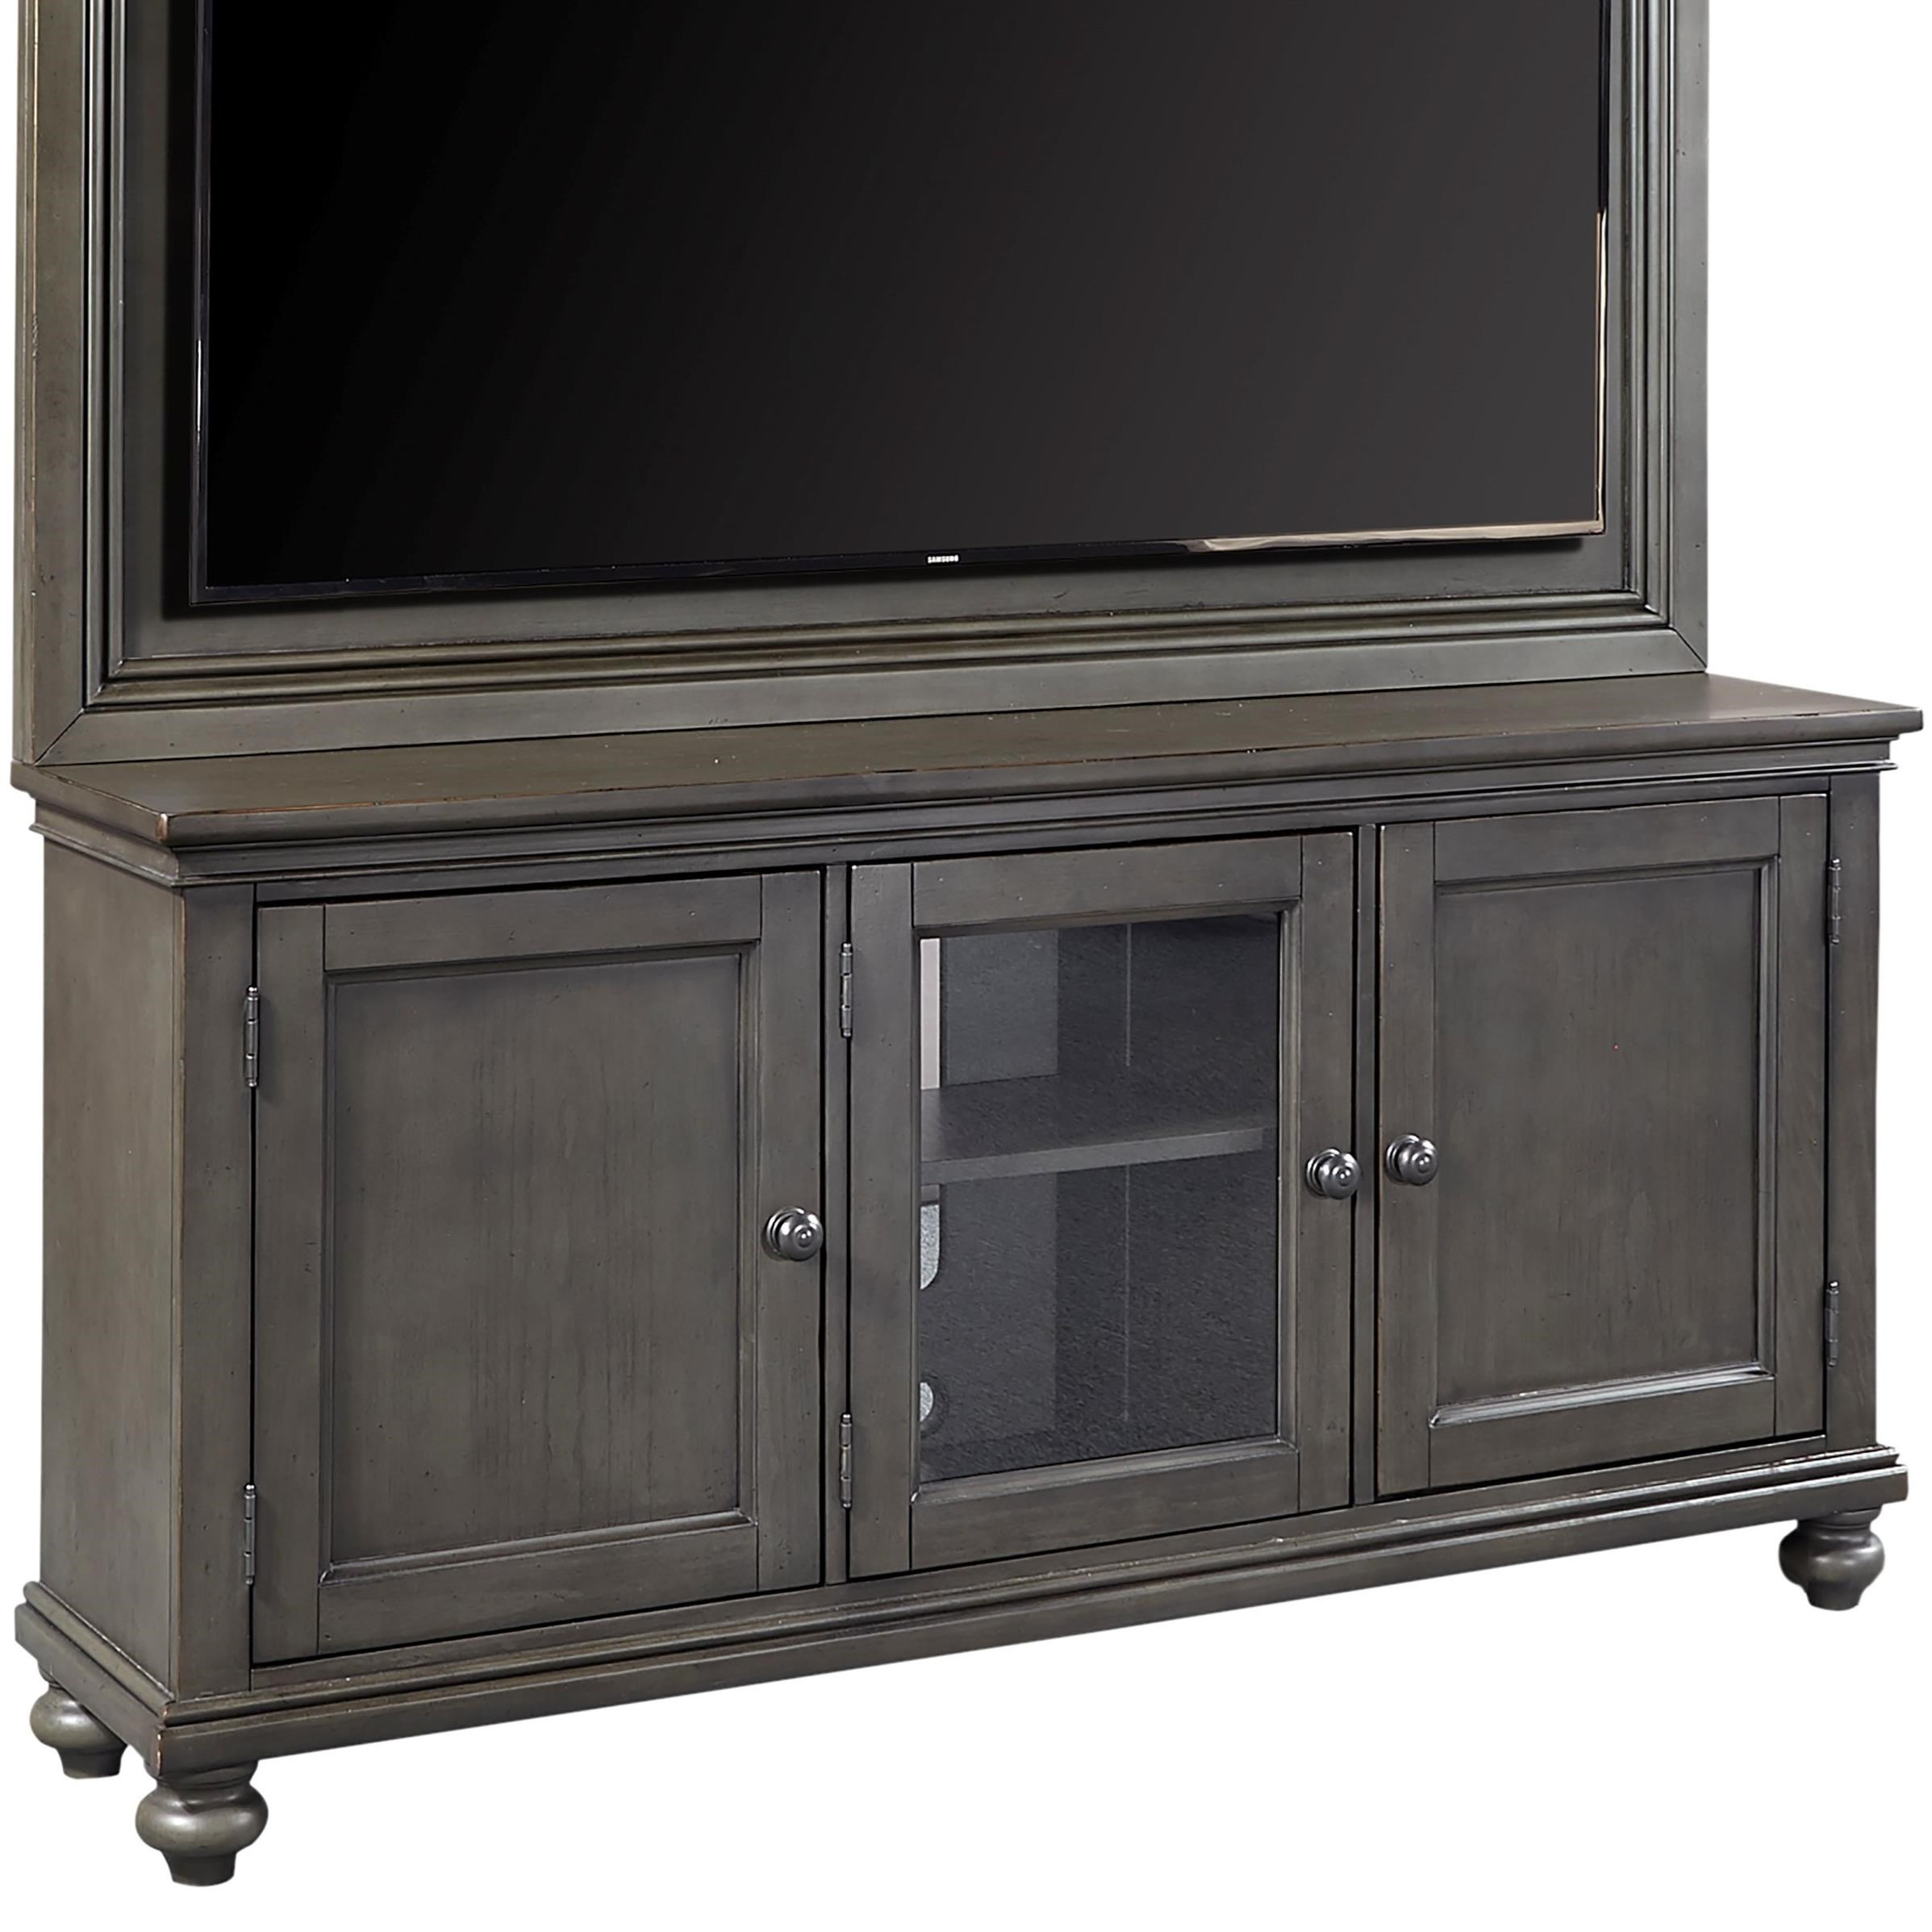 "Aspenhome Oxford 65"" Tv Stand With Adjustable Shelves 